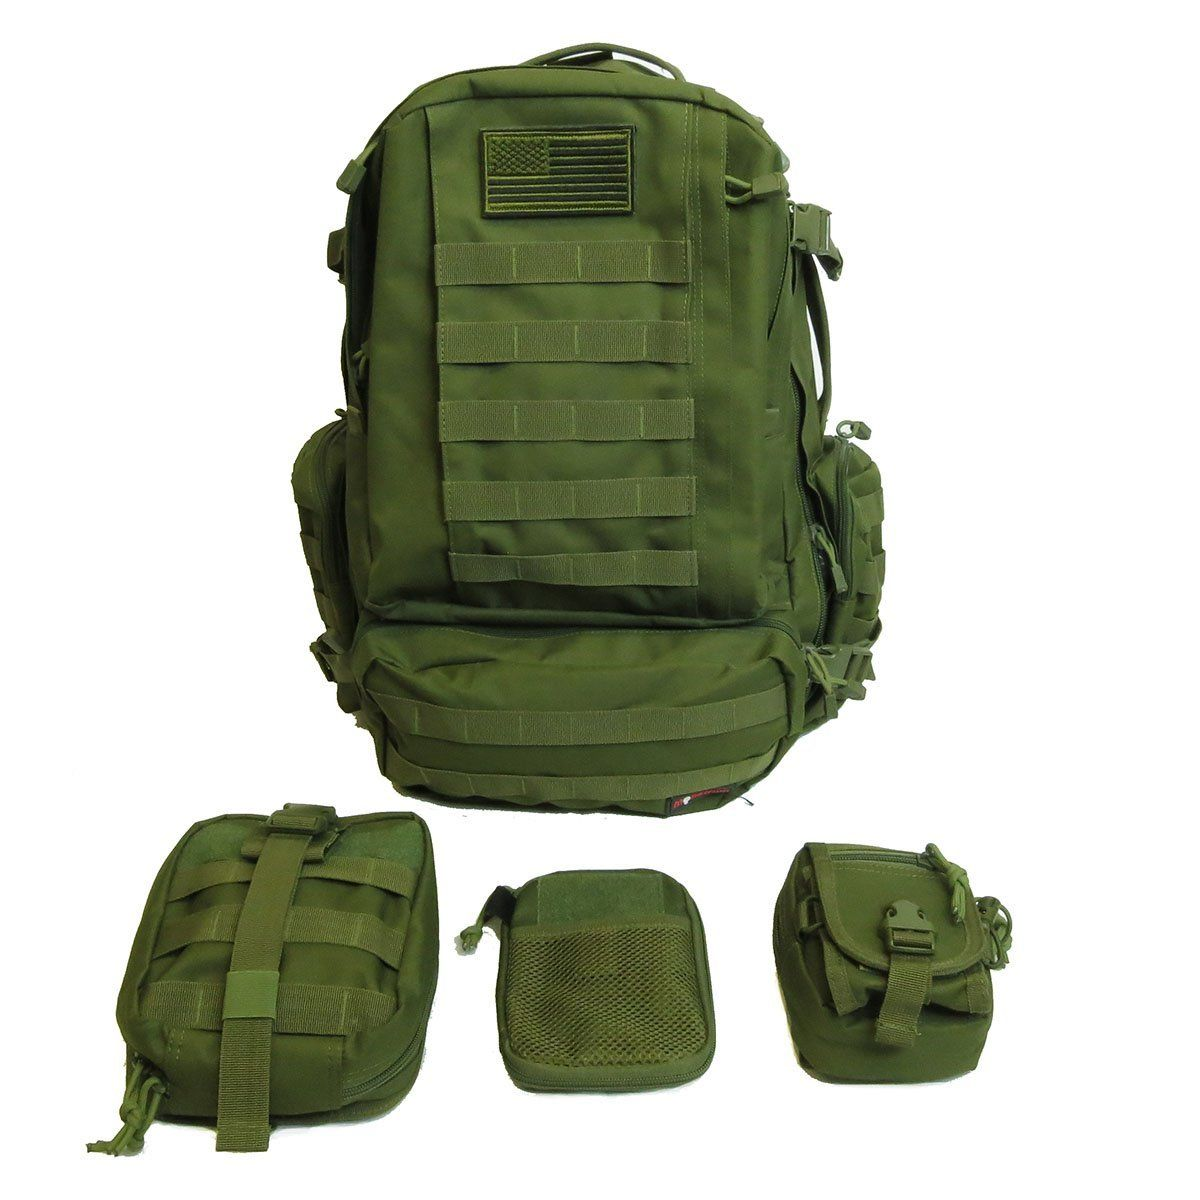 Monstrum Tactical 3 Day Backpack with MOLLE Accessory Packs (EMT ...